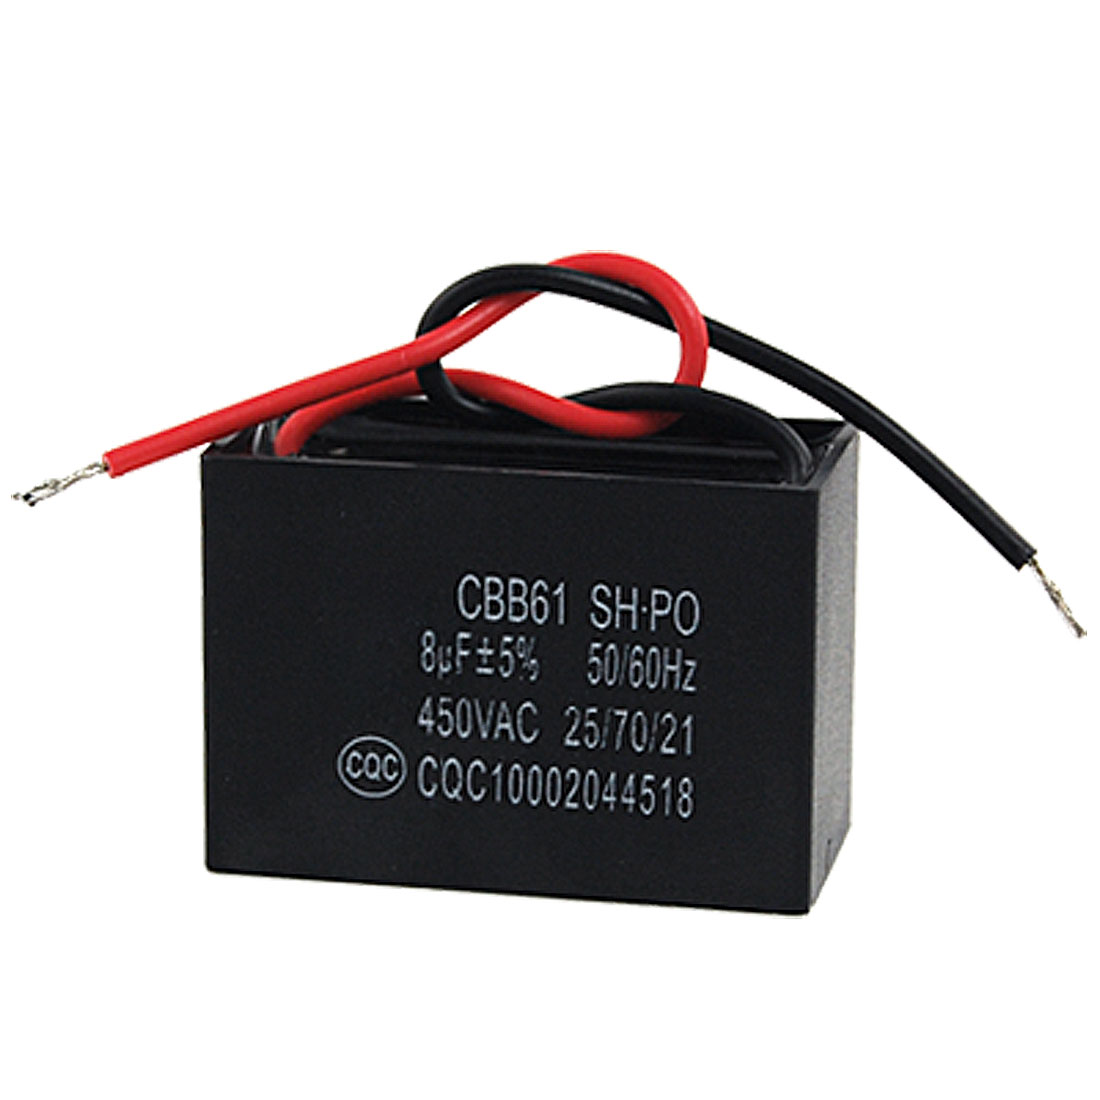 8000nF 8MFD 8uf 450VAC 50/60Hz 2 Wire Fan Capacitor CBB61